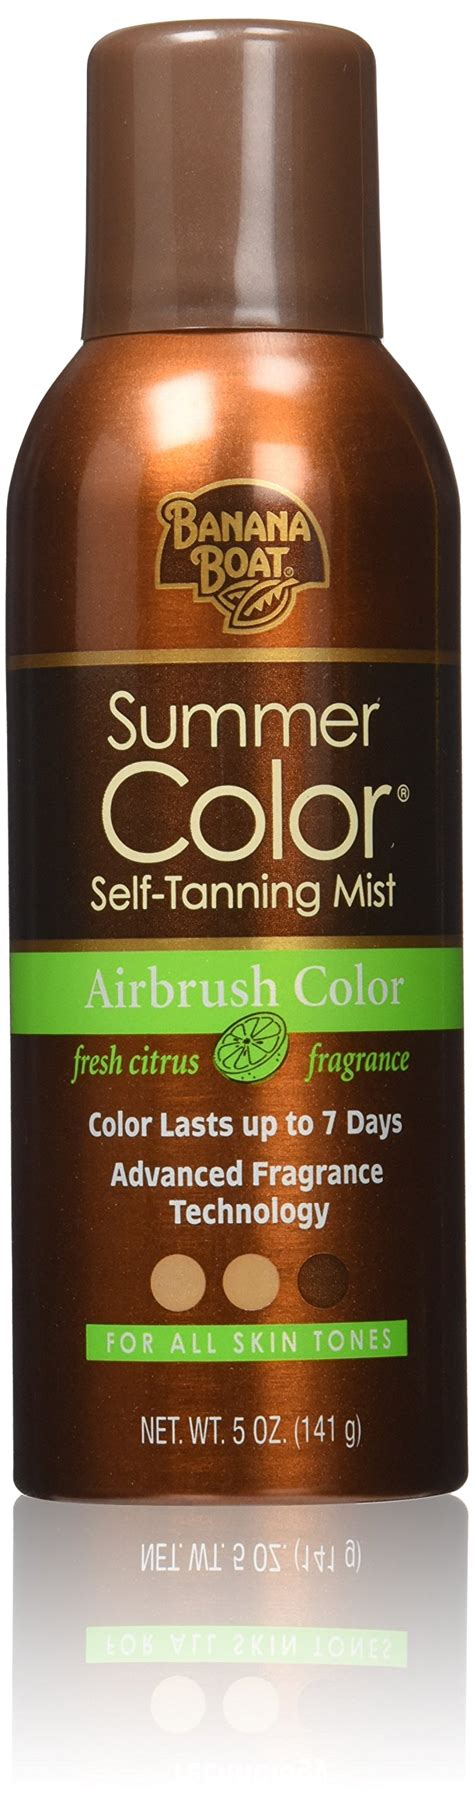 banana boat self tanner medium banana boat summer color self tanning mist 5